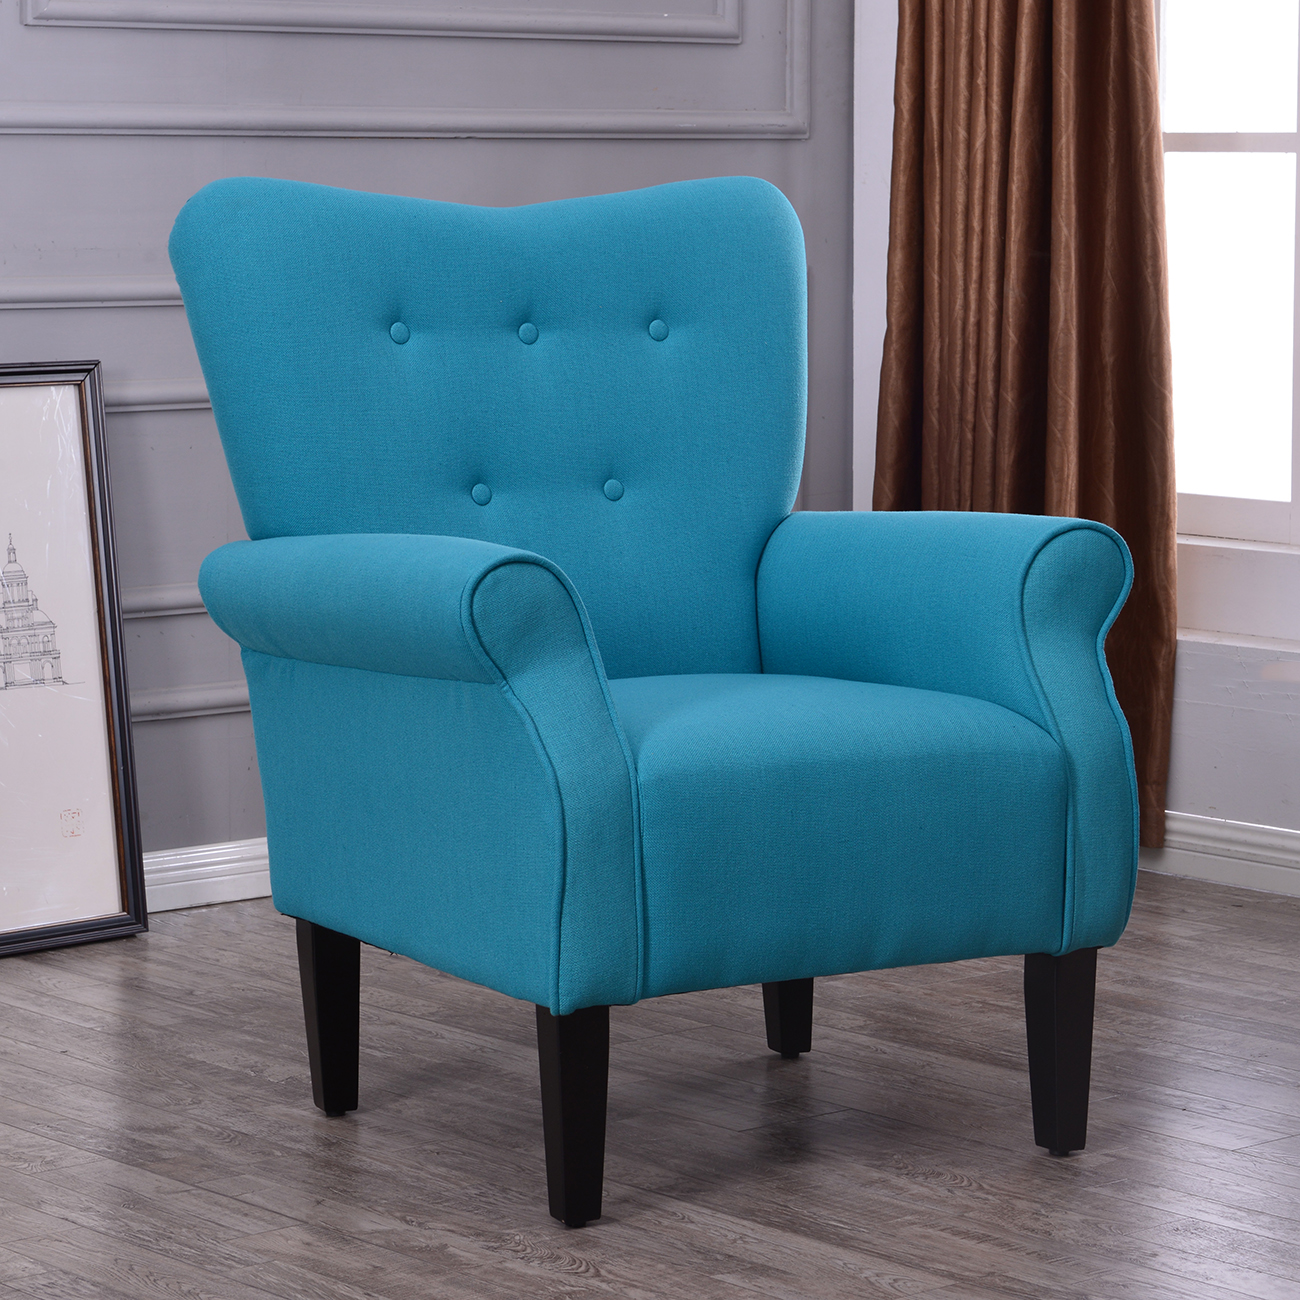 Belleze Living Room Wingback Armchair Modern Accent Chair High Back Linen, Mallard Teal by Belleze